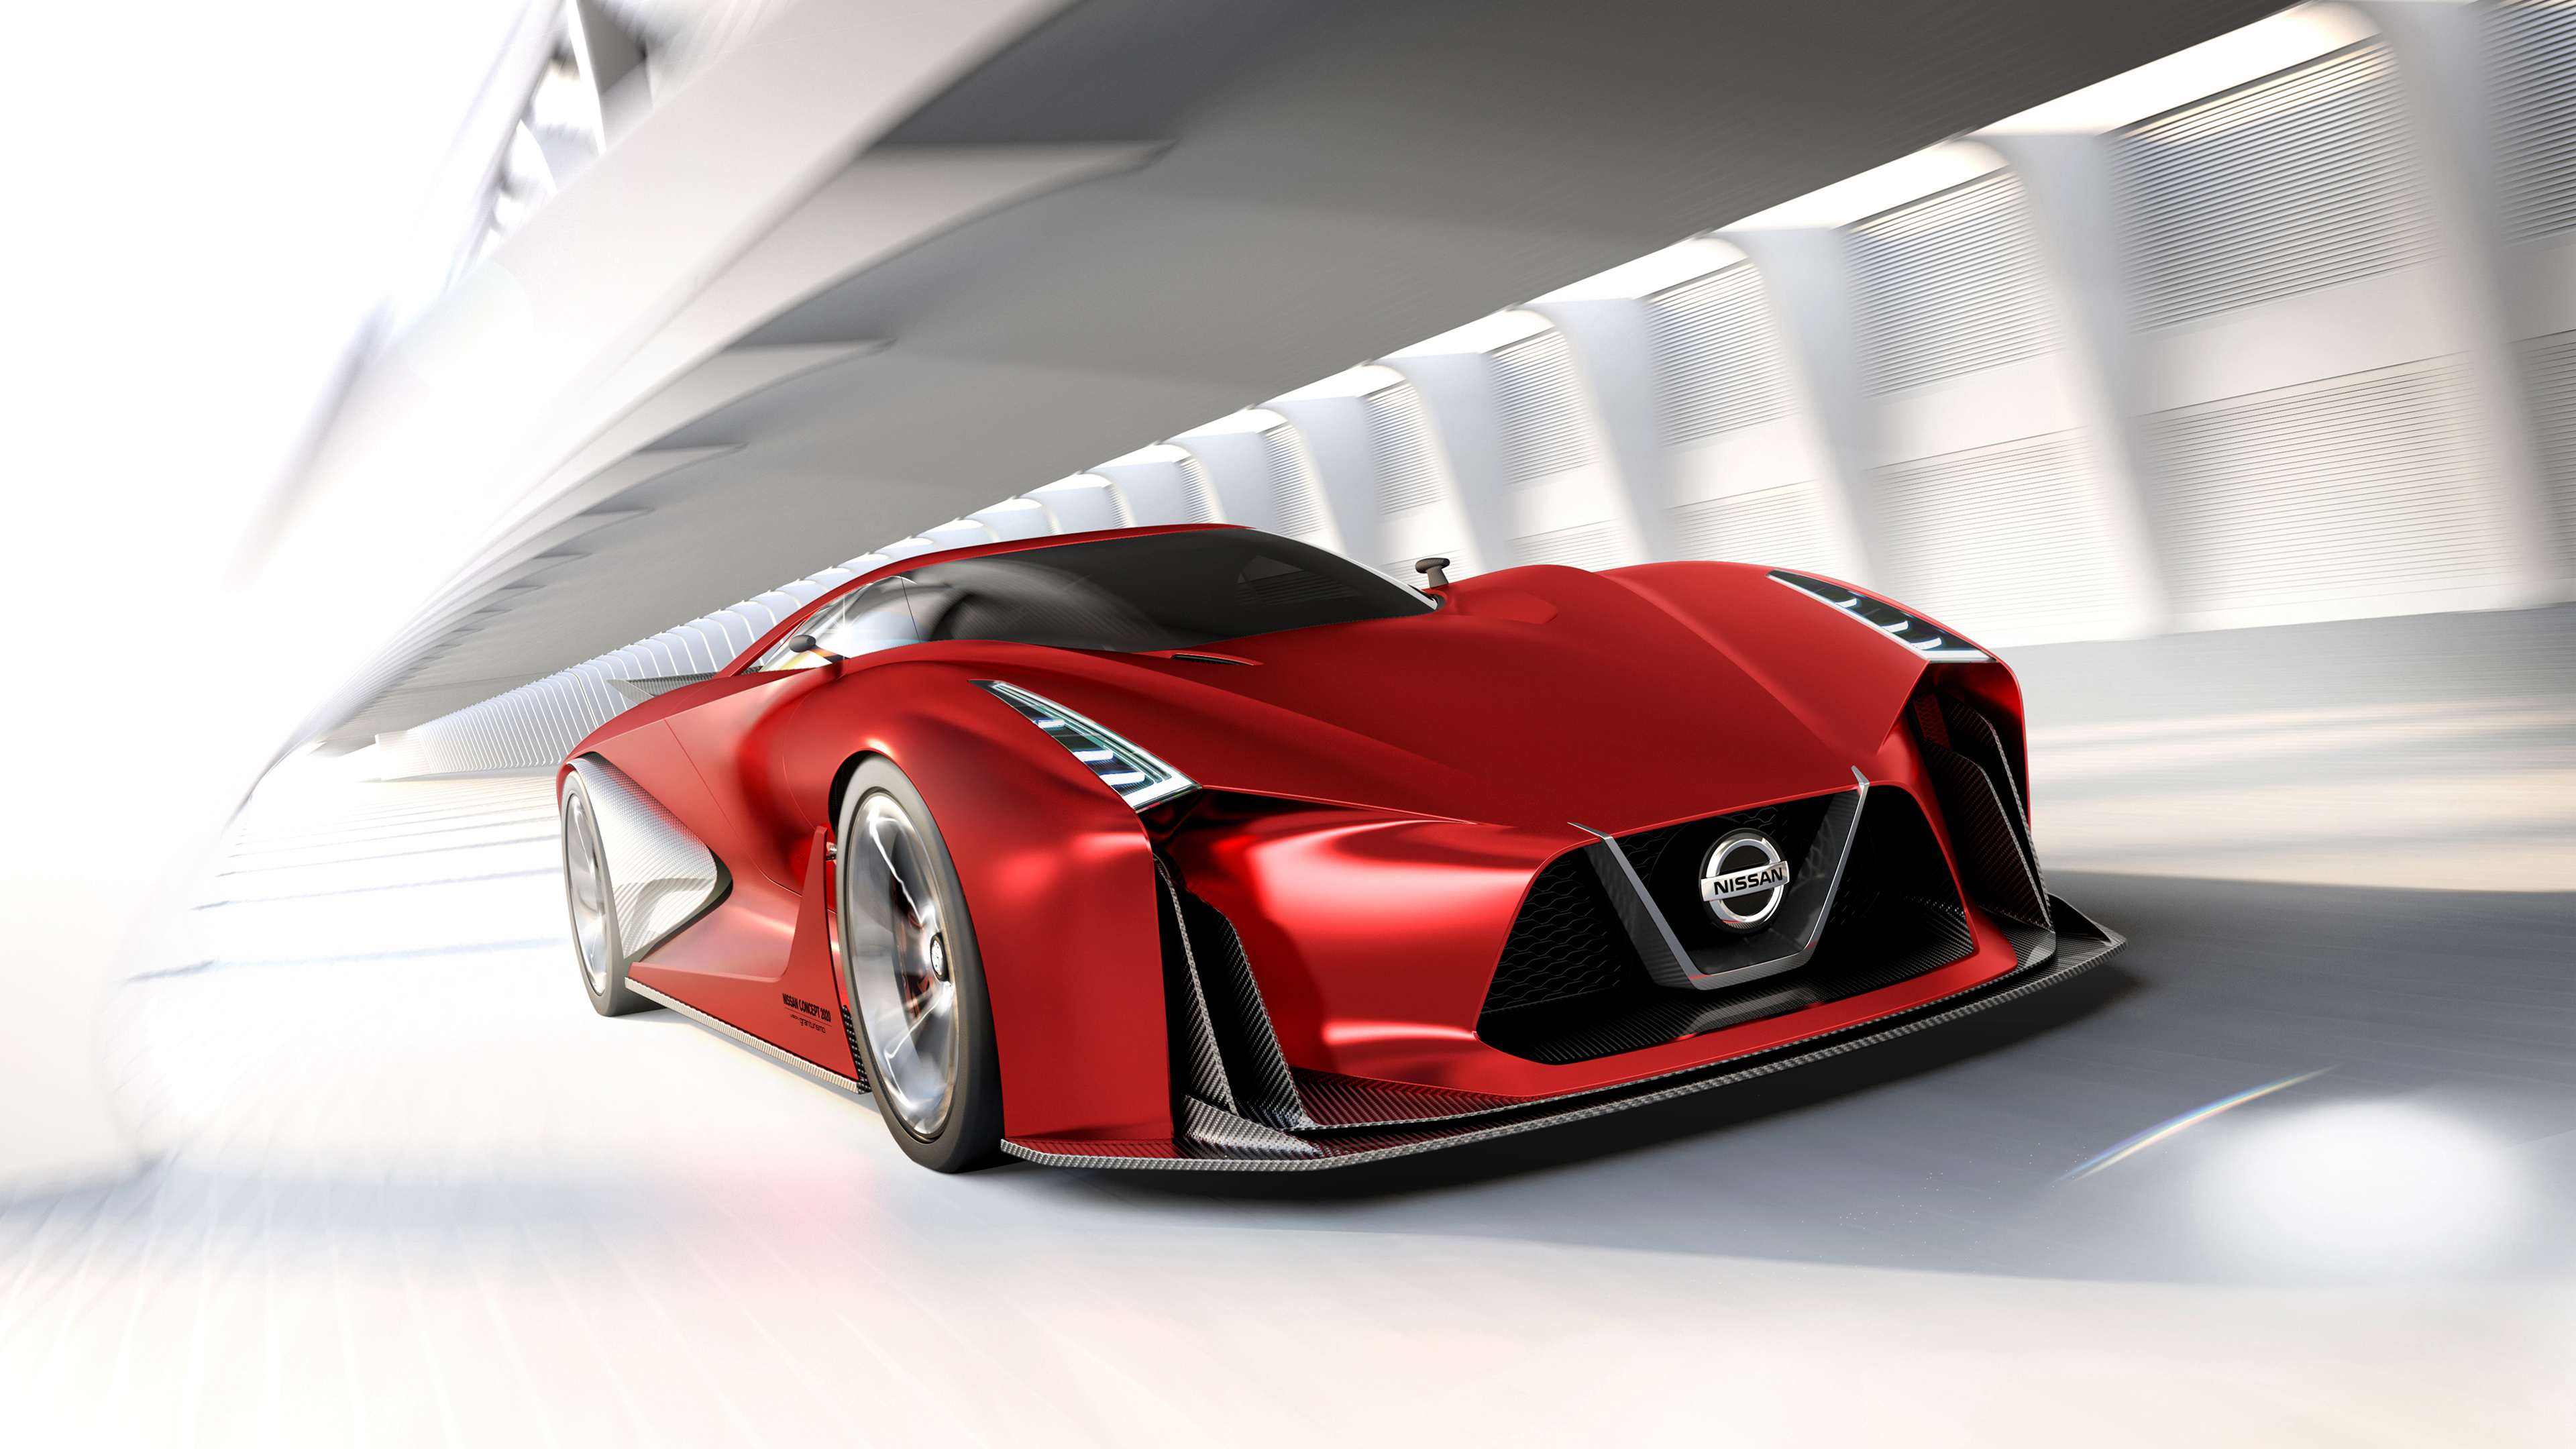 3840x2160 - Nissan Concept Wallpapers 3